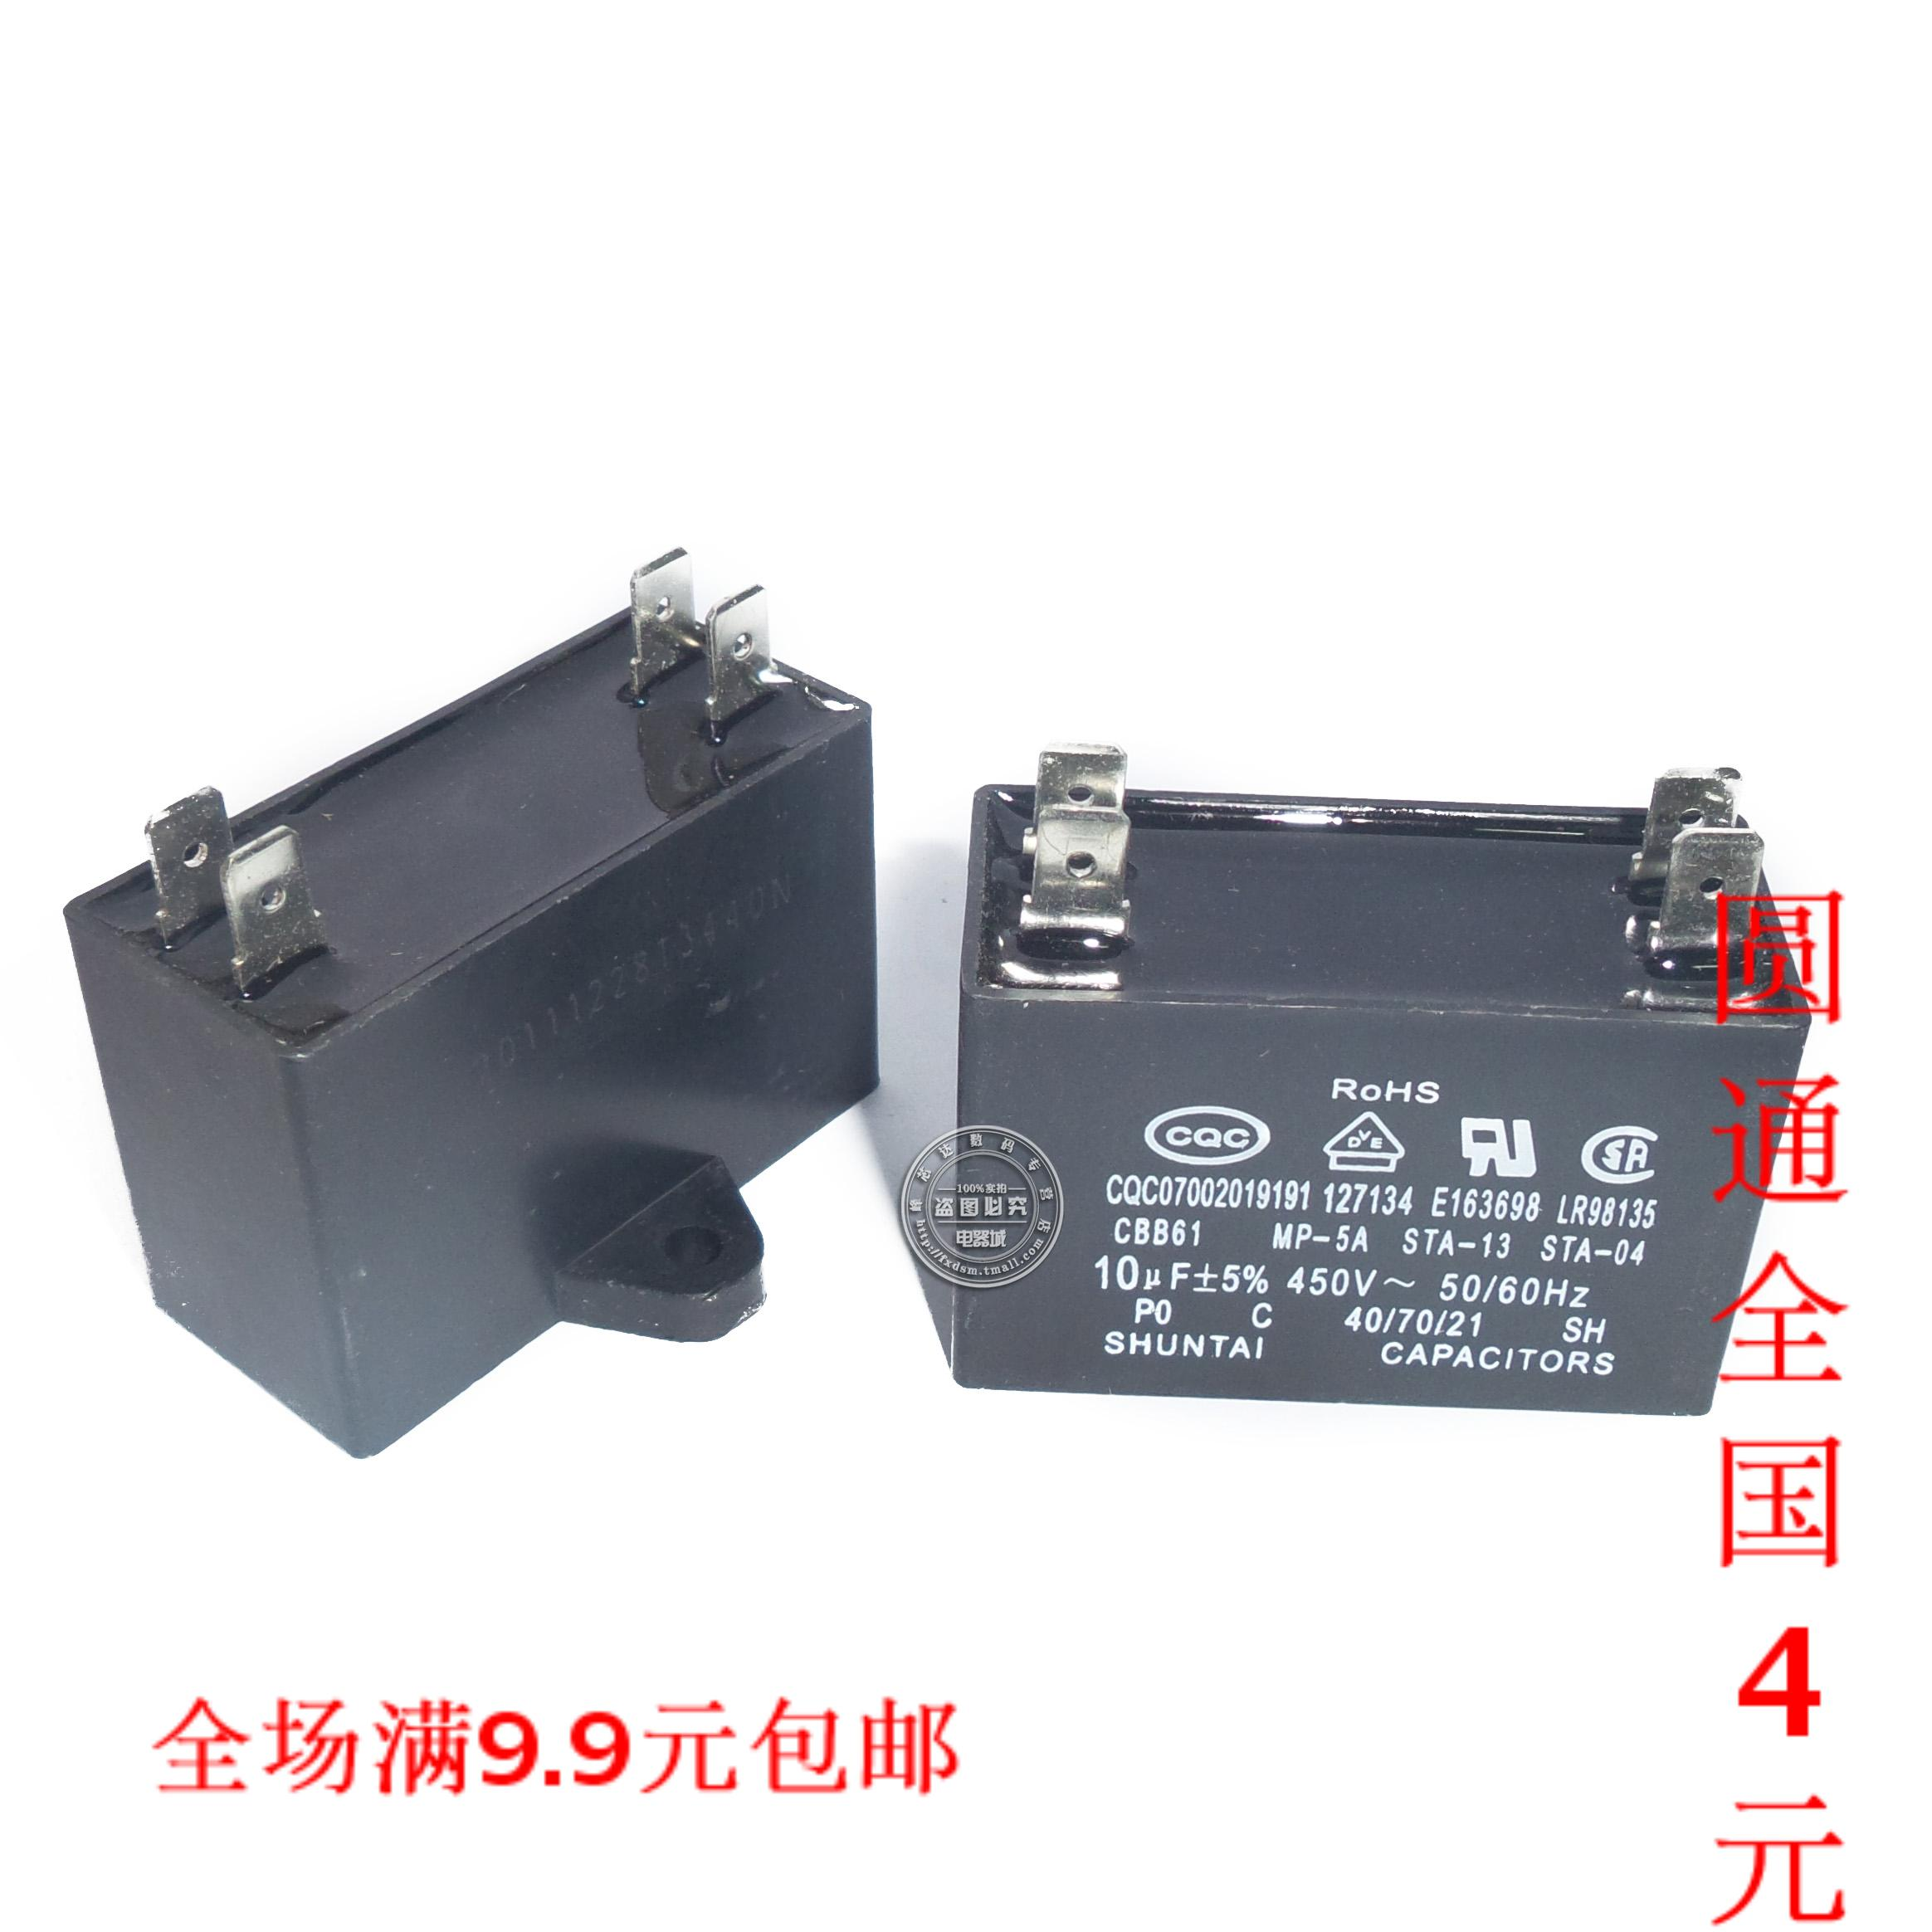 Rui shu broadcast 10 uf conditioning fan capacitor capacitance capacitors 450 v 10 uf start capacitor start capacitor cbb61 fan capacitor